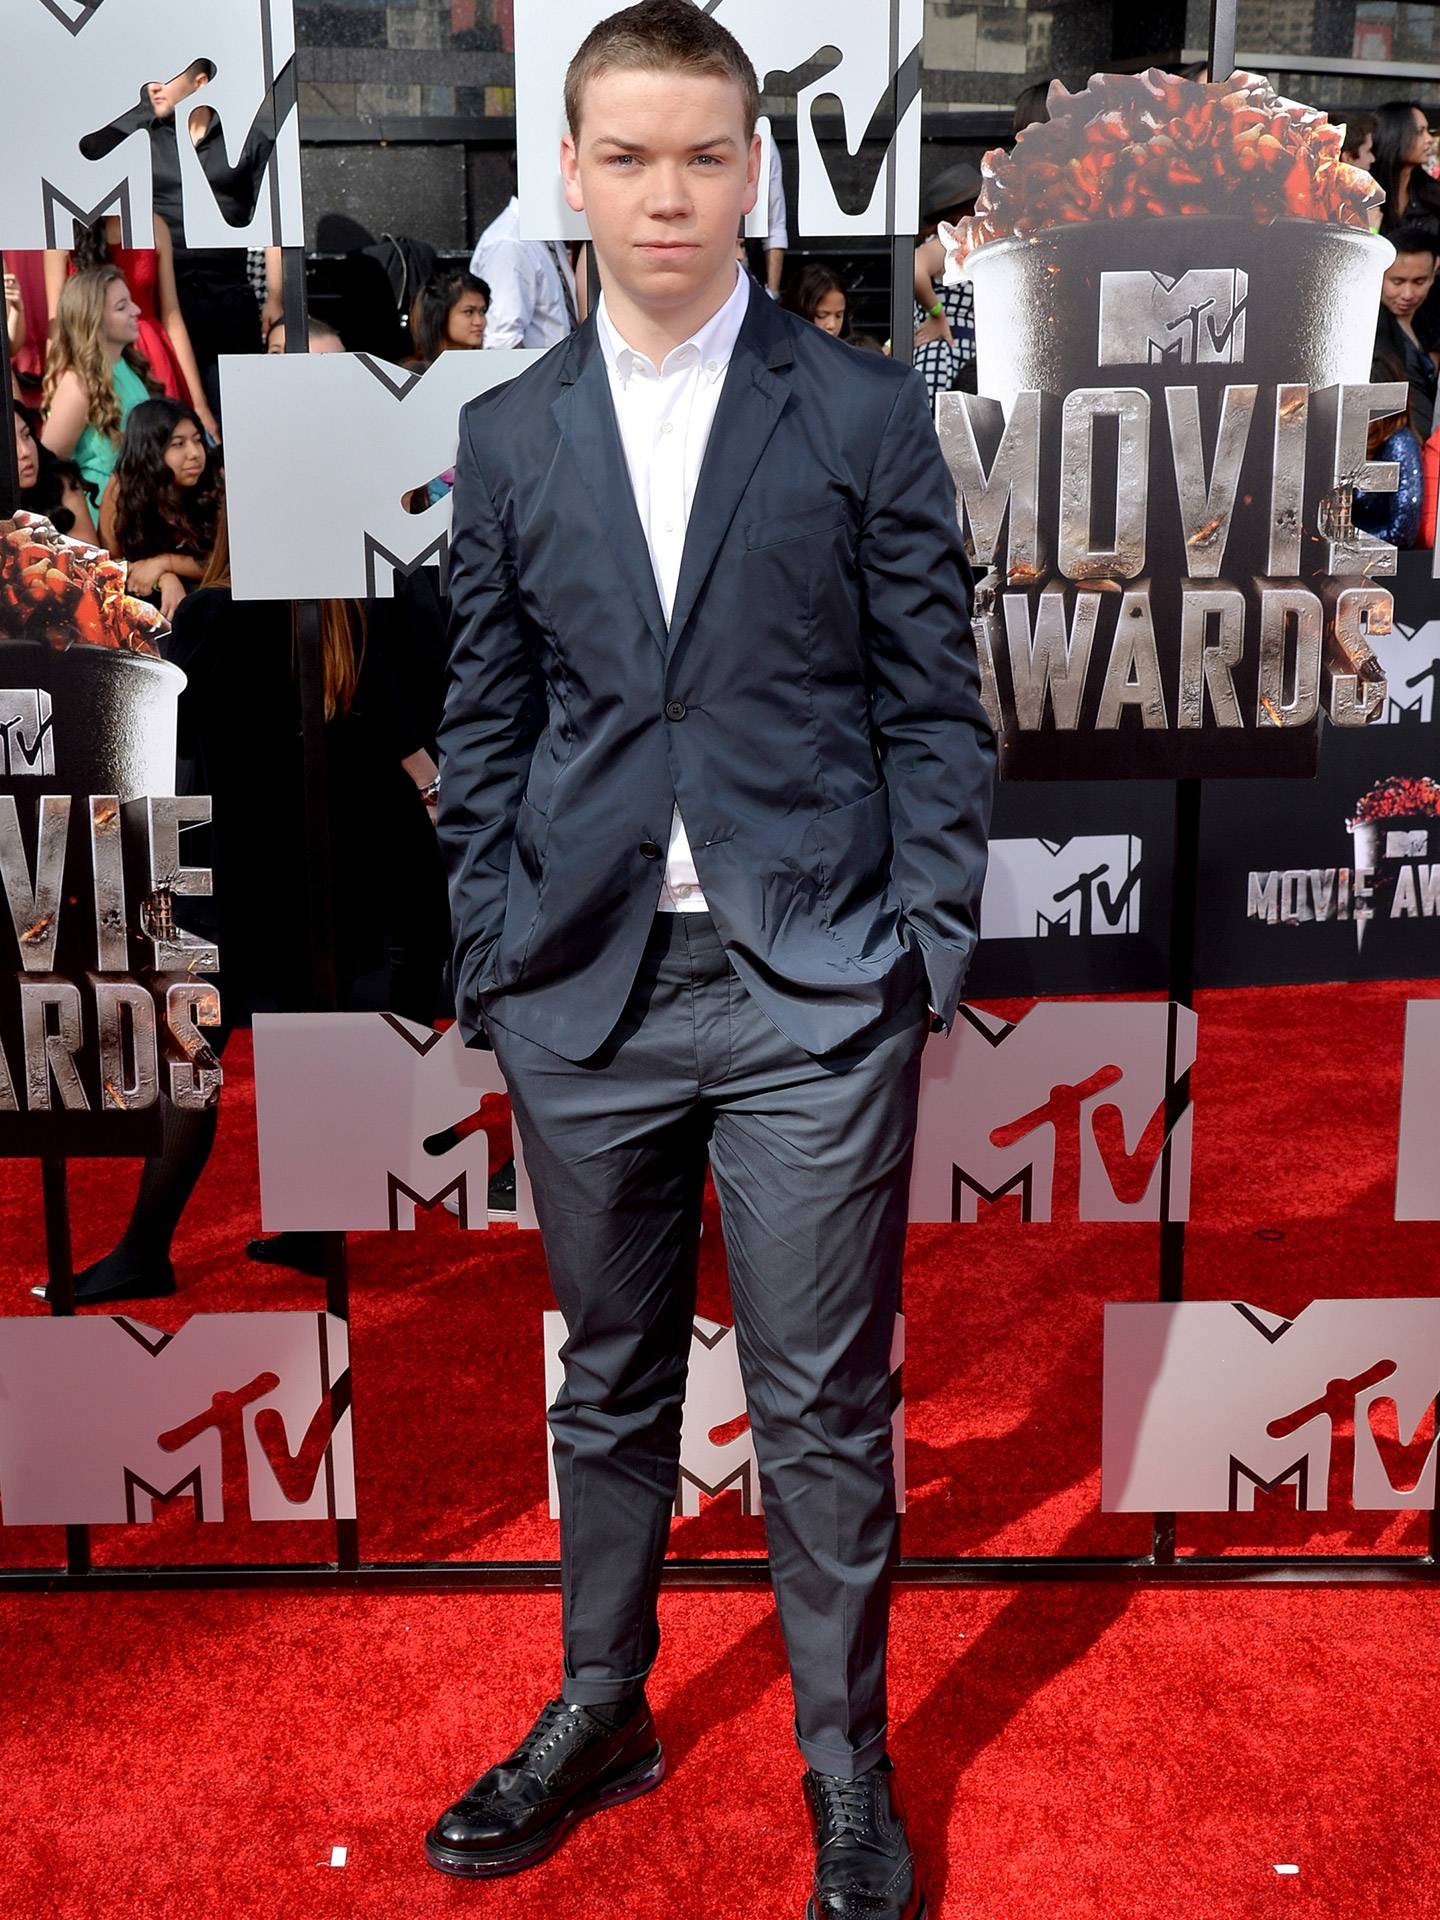 mgid:file:gsp:scenic:/international/mtvla.com/Will-Poulter-Getty-Images-484677451.jpg